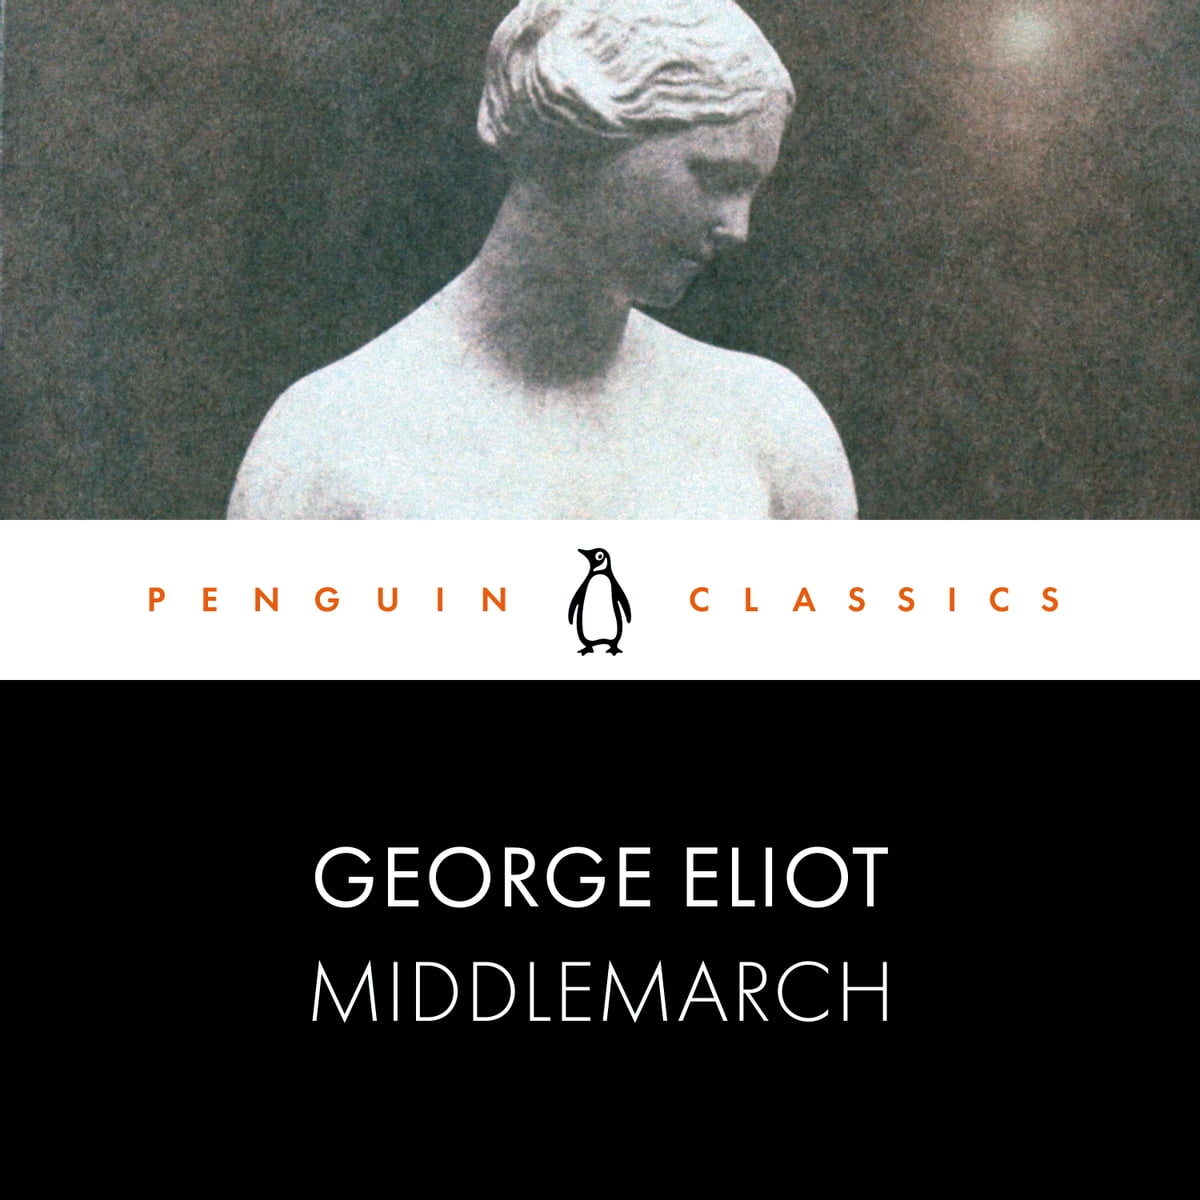 Middlemarch Audiobook by George Eliot - 9780241422540 | Rakuten Kobo